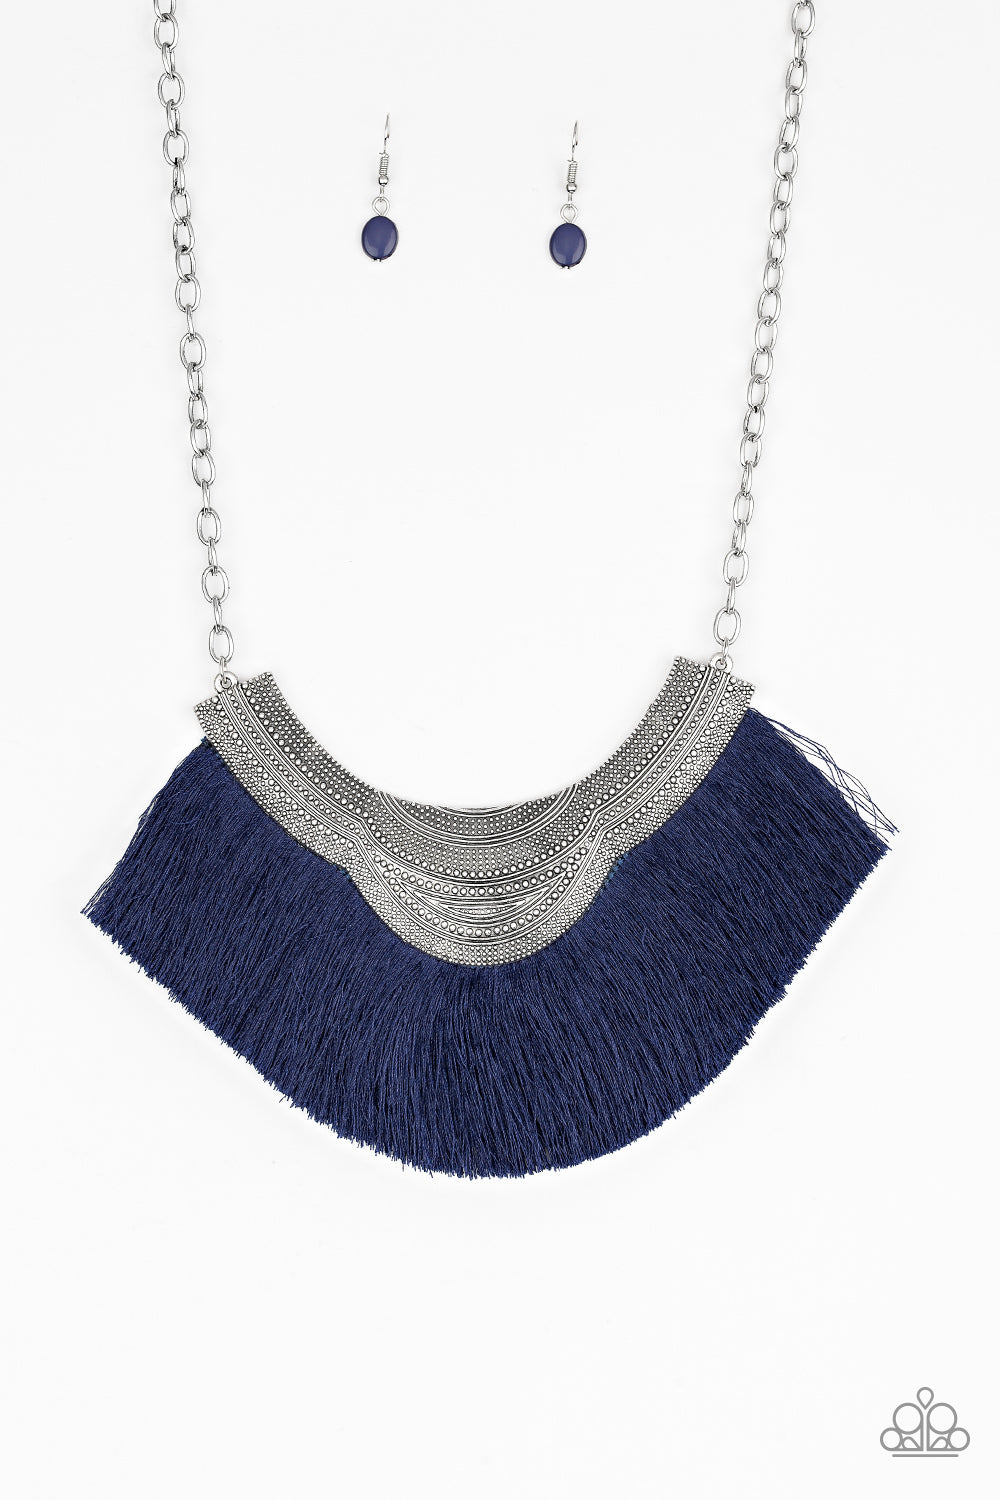 My Pharaoh Lady Blue Fringe Necklace Paparazzi